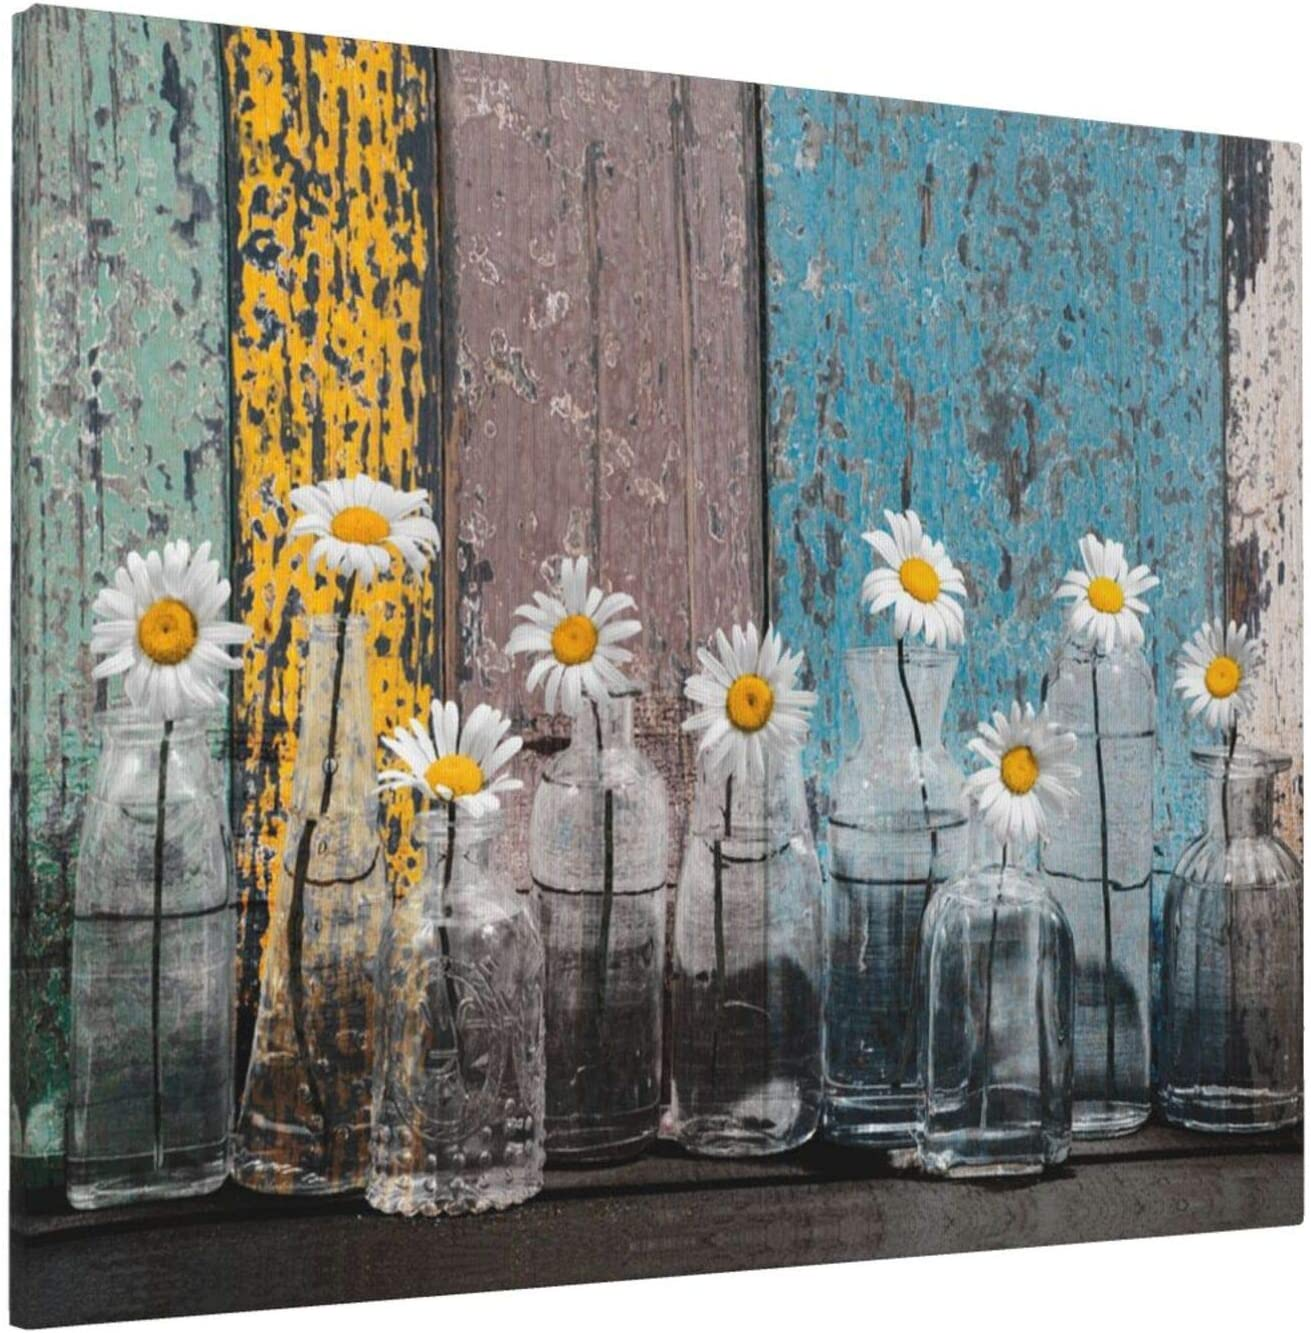 EZYES Vintage Daisy Flower shipfree Vase Picture Modern Painting Austin Mall Abstract